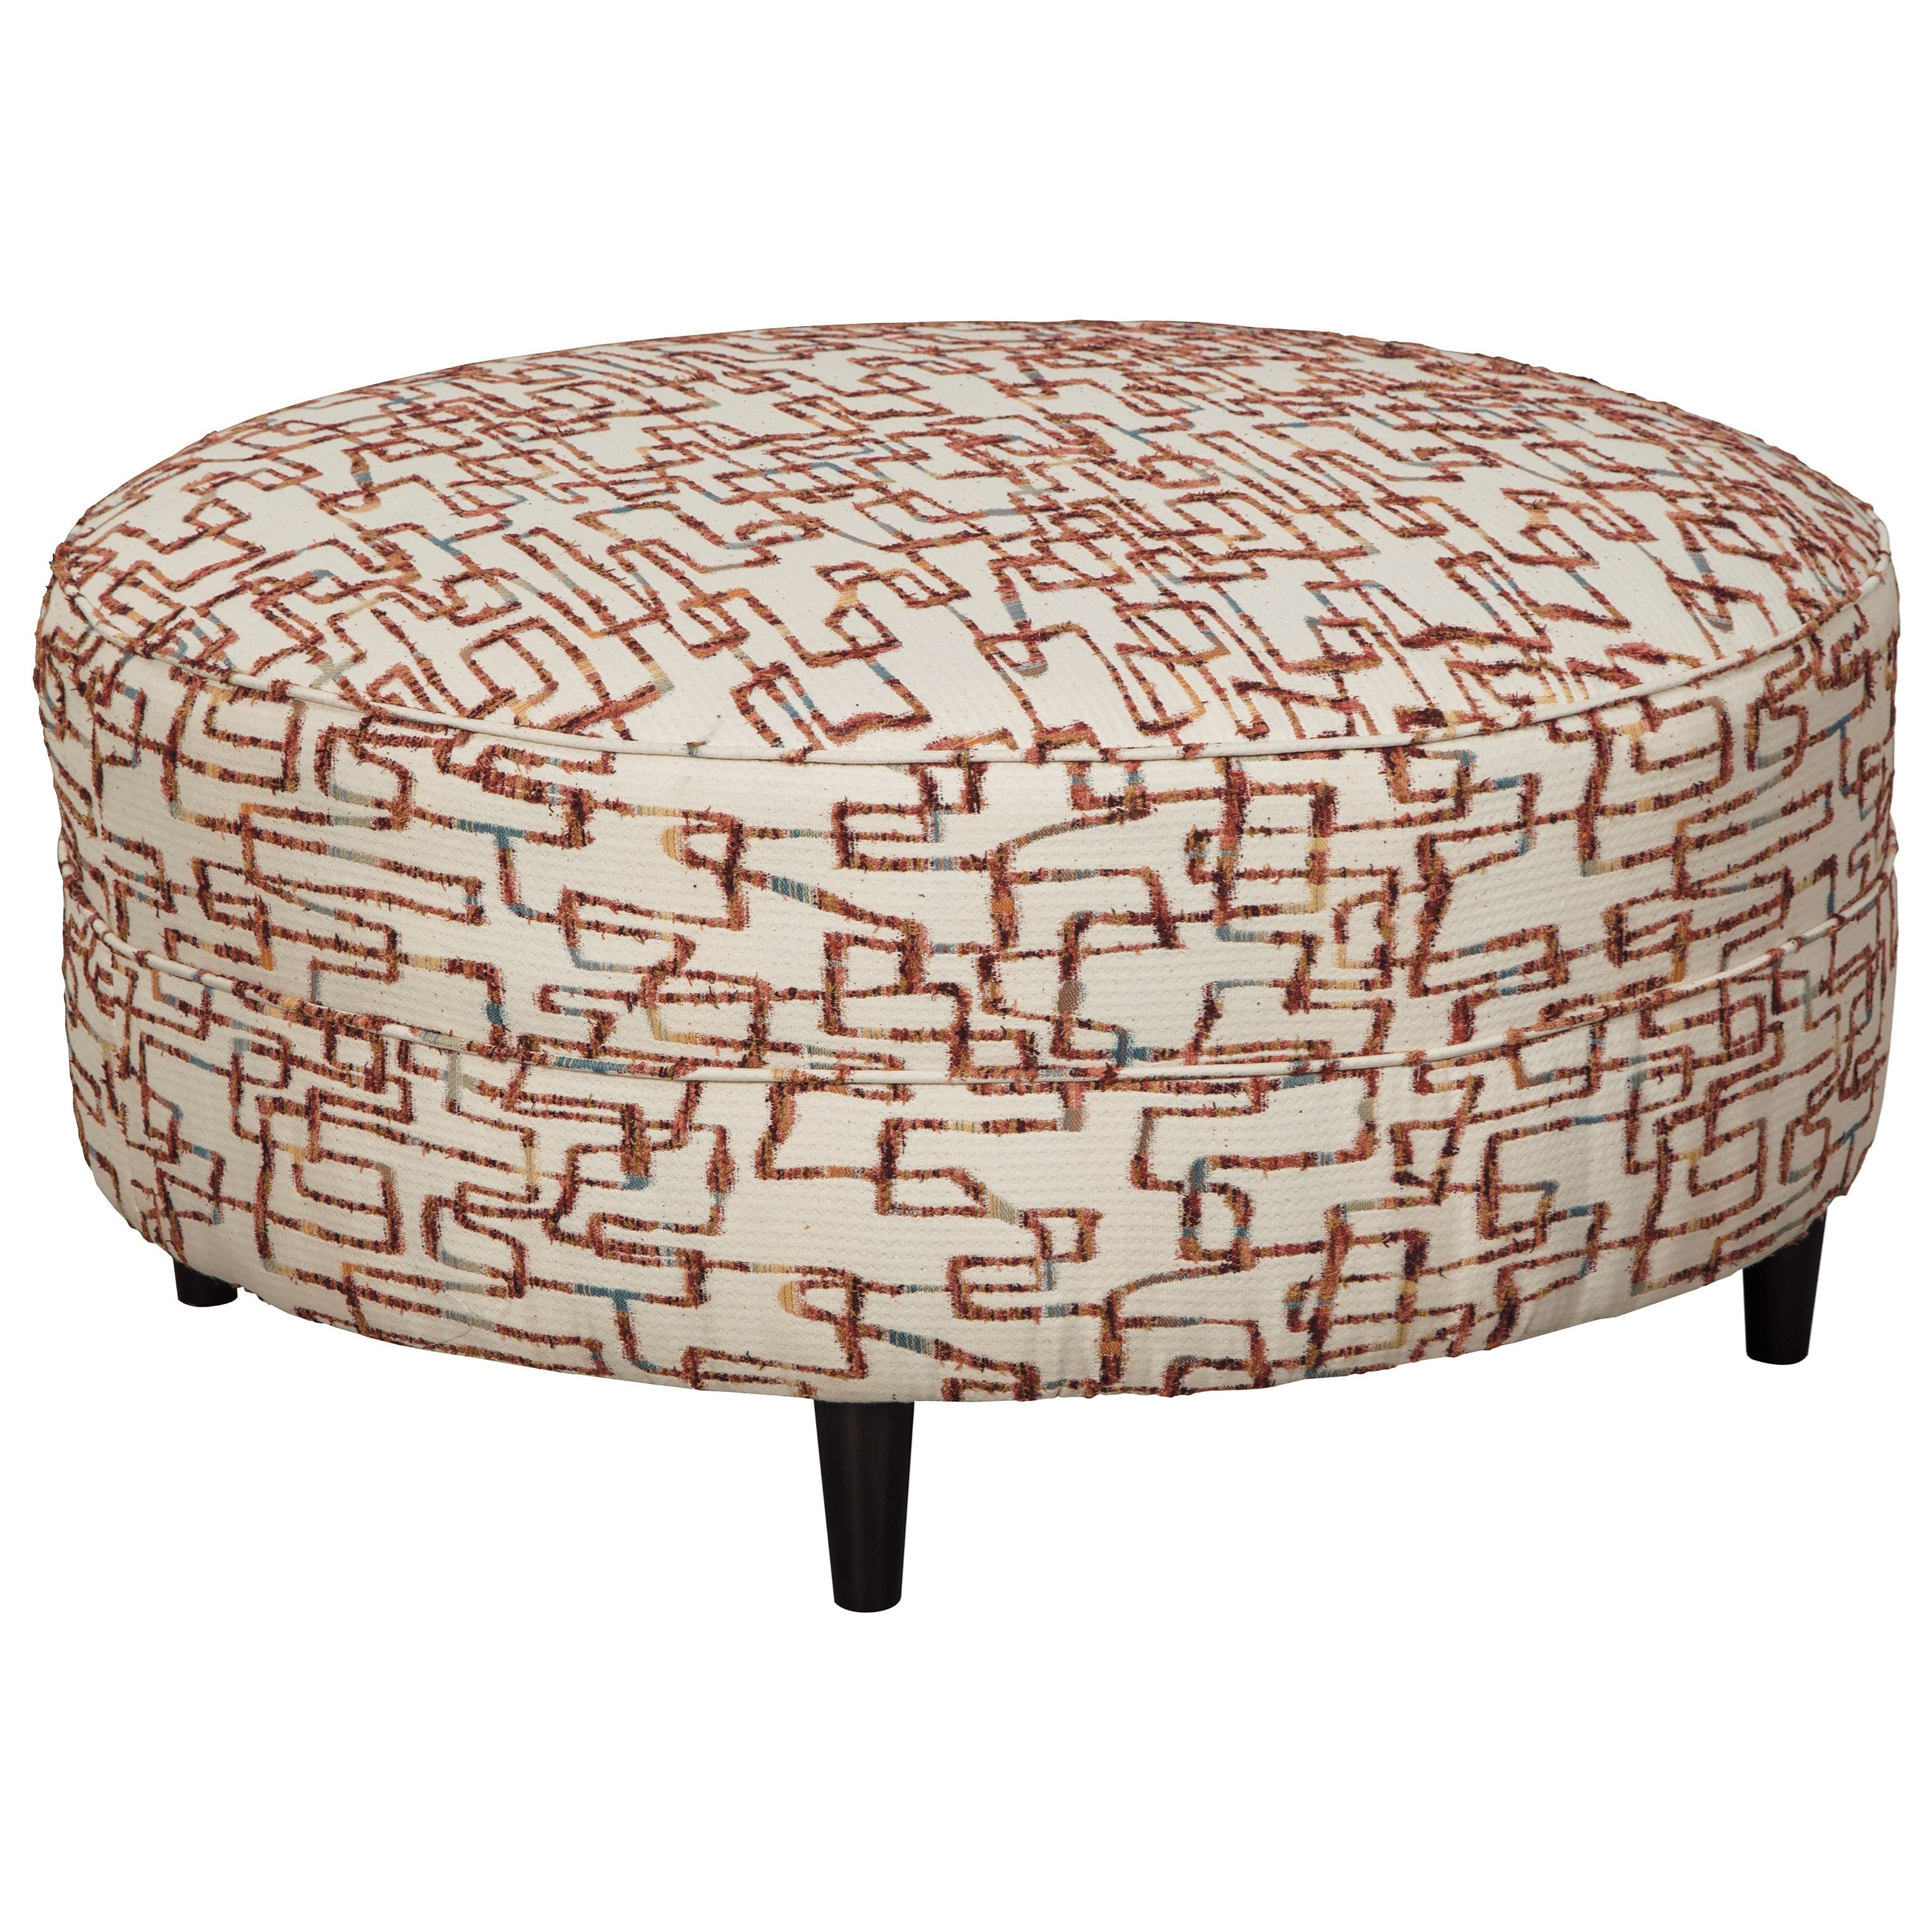 Amici Oversized Accent Ottoman by Signature Design at Fisher Home Furnishings